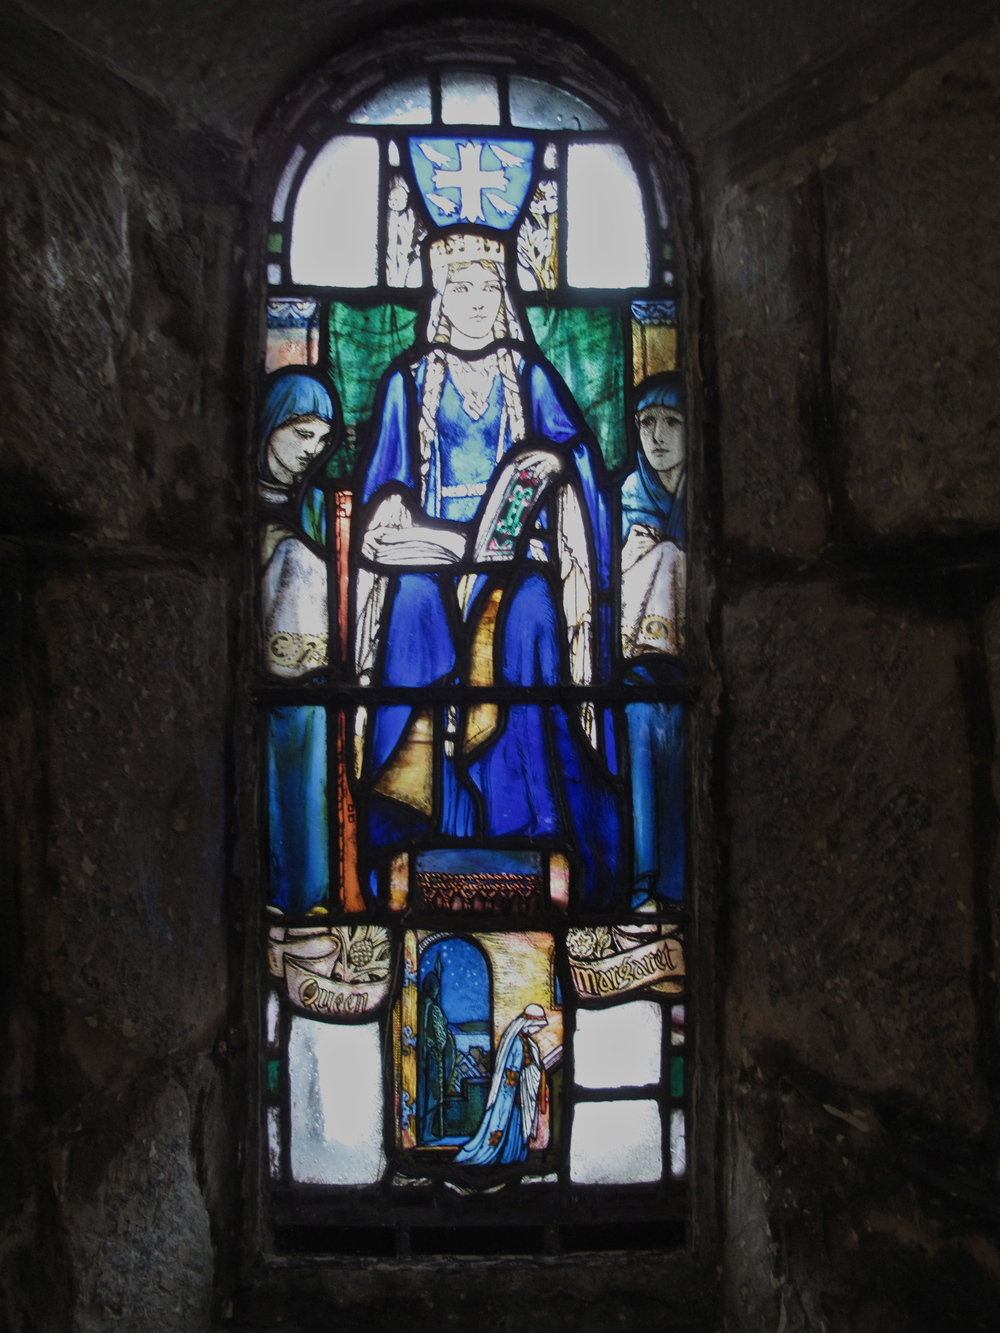 Stained glass window in the old chapel in Edinburgh Castle.